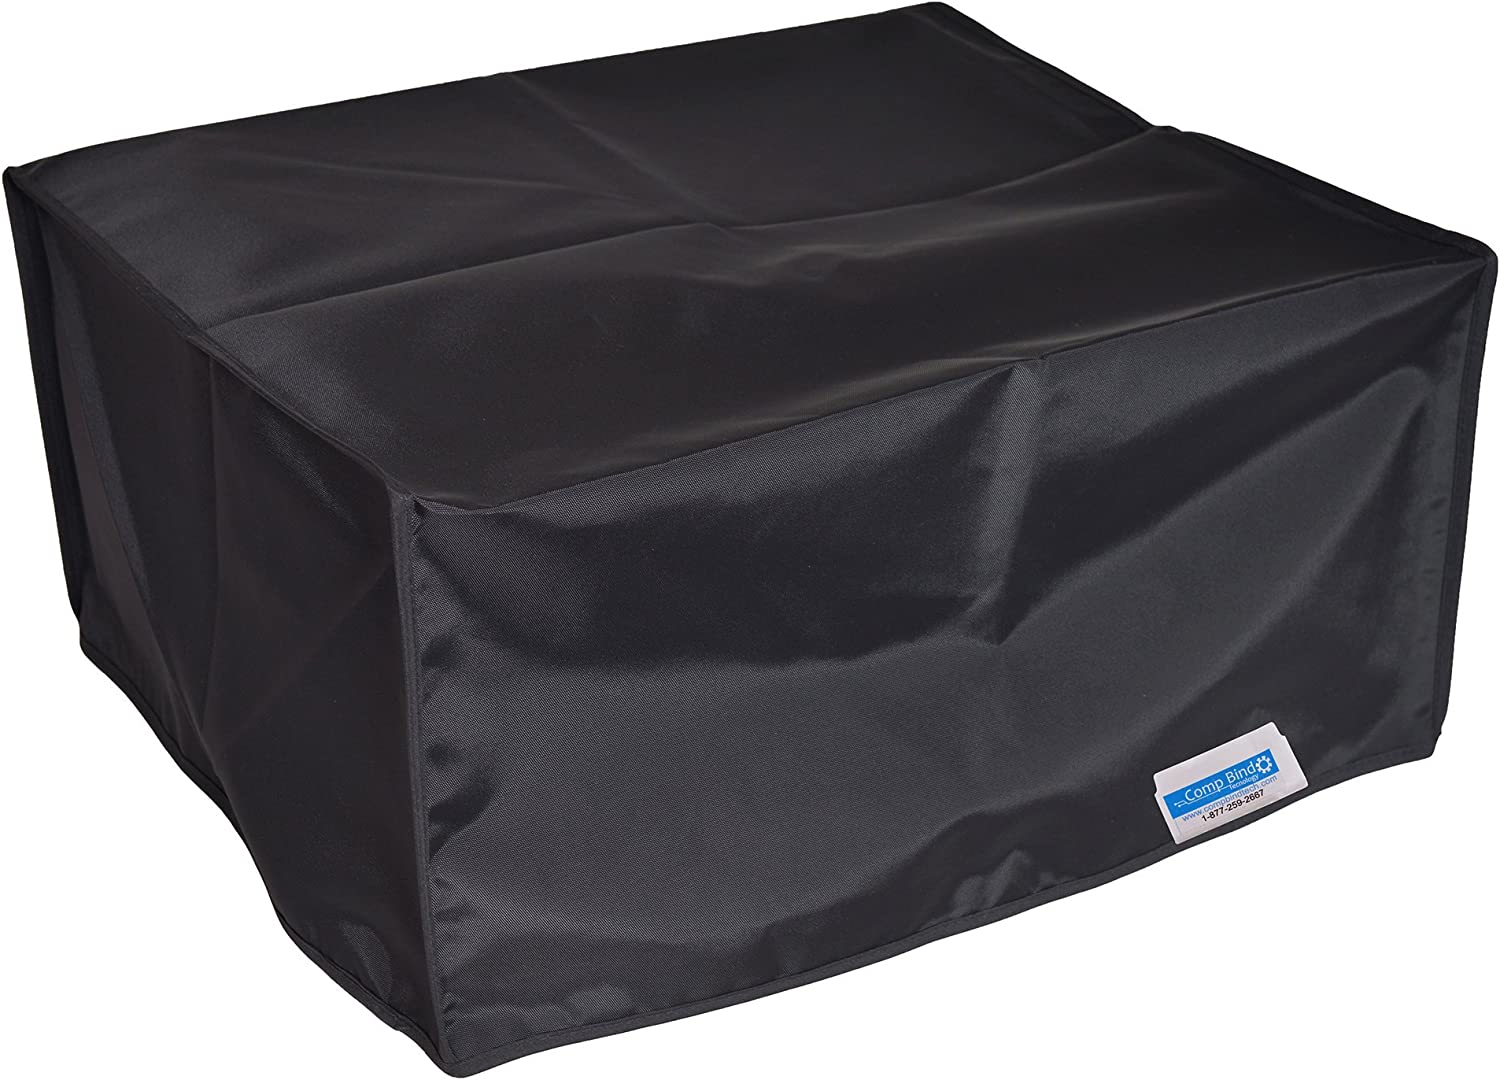 Comp Bind Technology Dust Cover for HP Laserjet 1320 Printer, Black Nylon Dust Cover, Dimensions 14''W x 14''D x 10''H